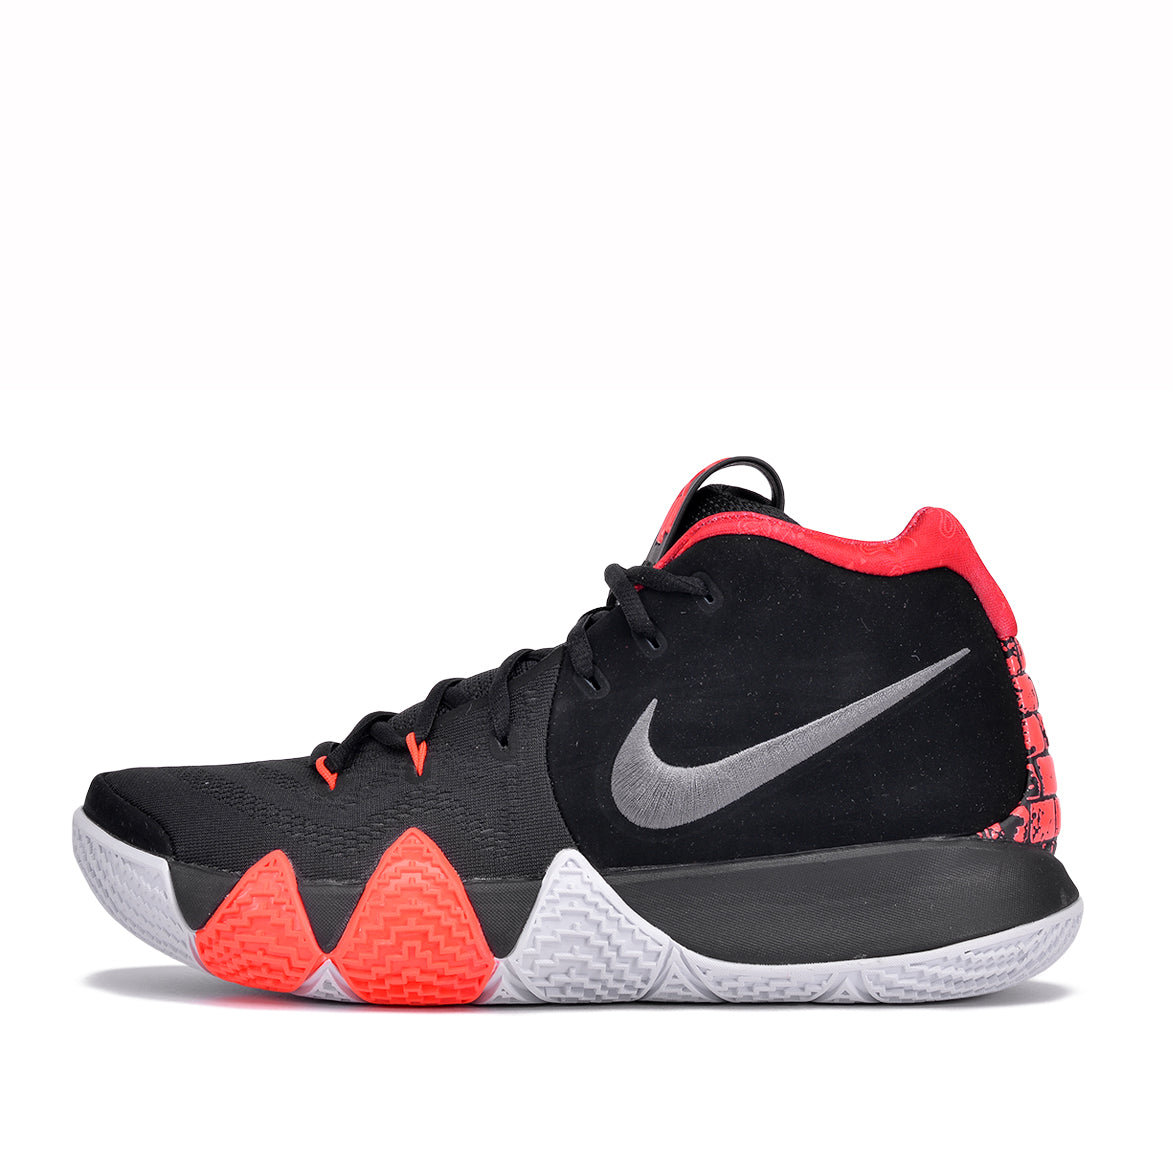 info for 58387 2eaeb KYRIE 4